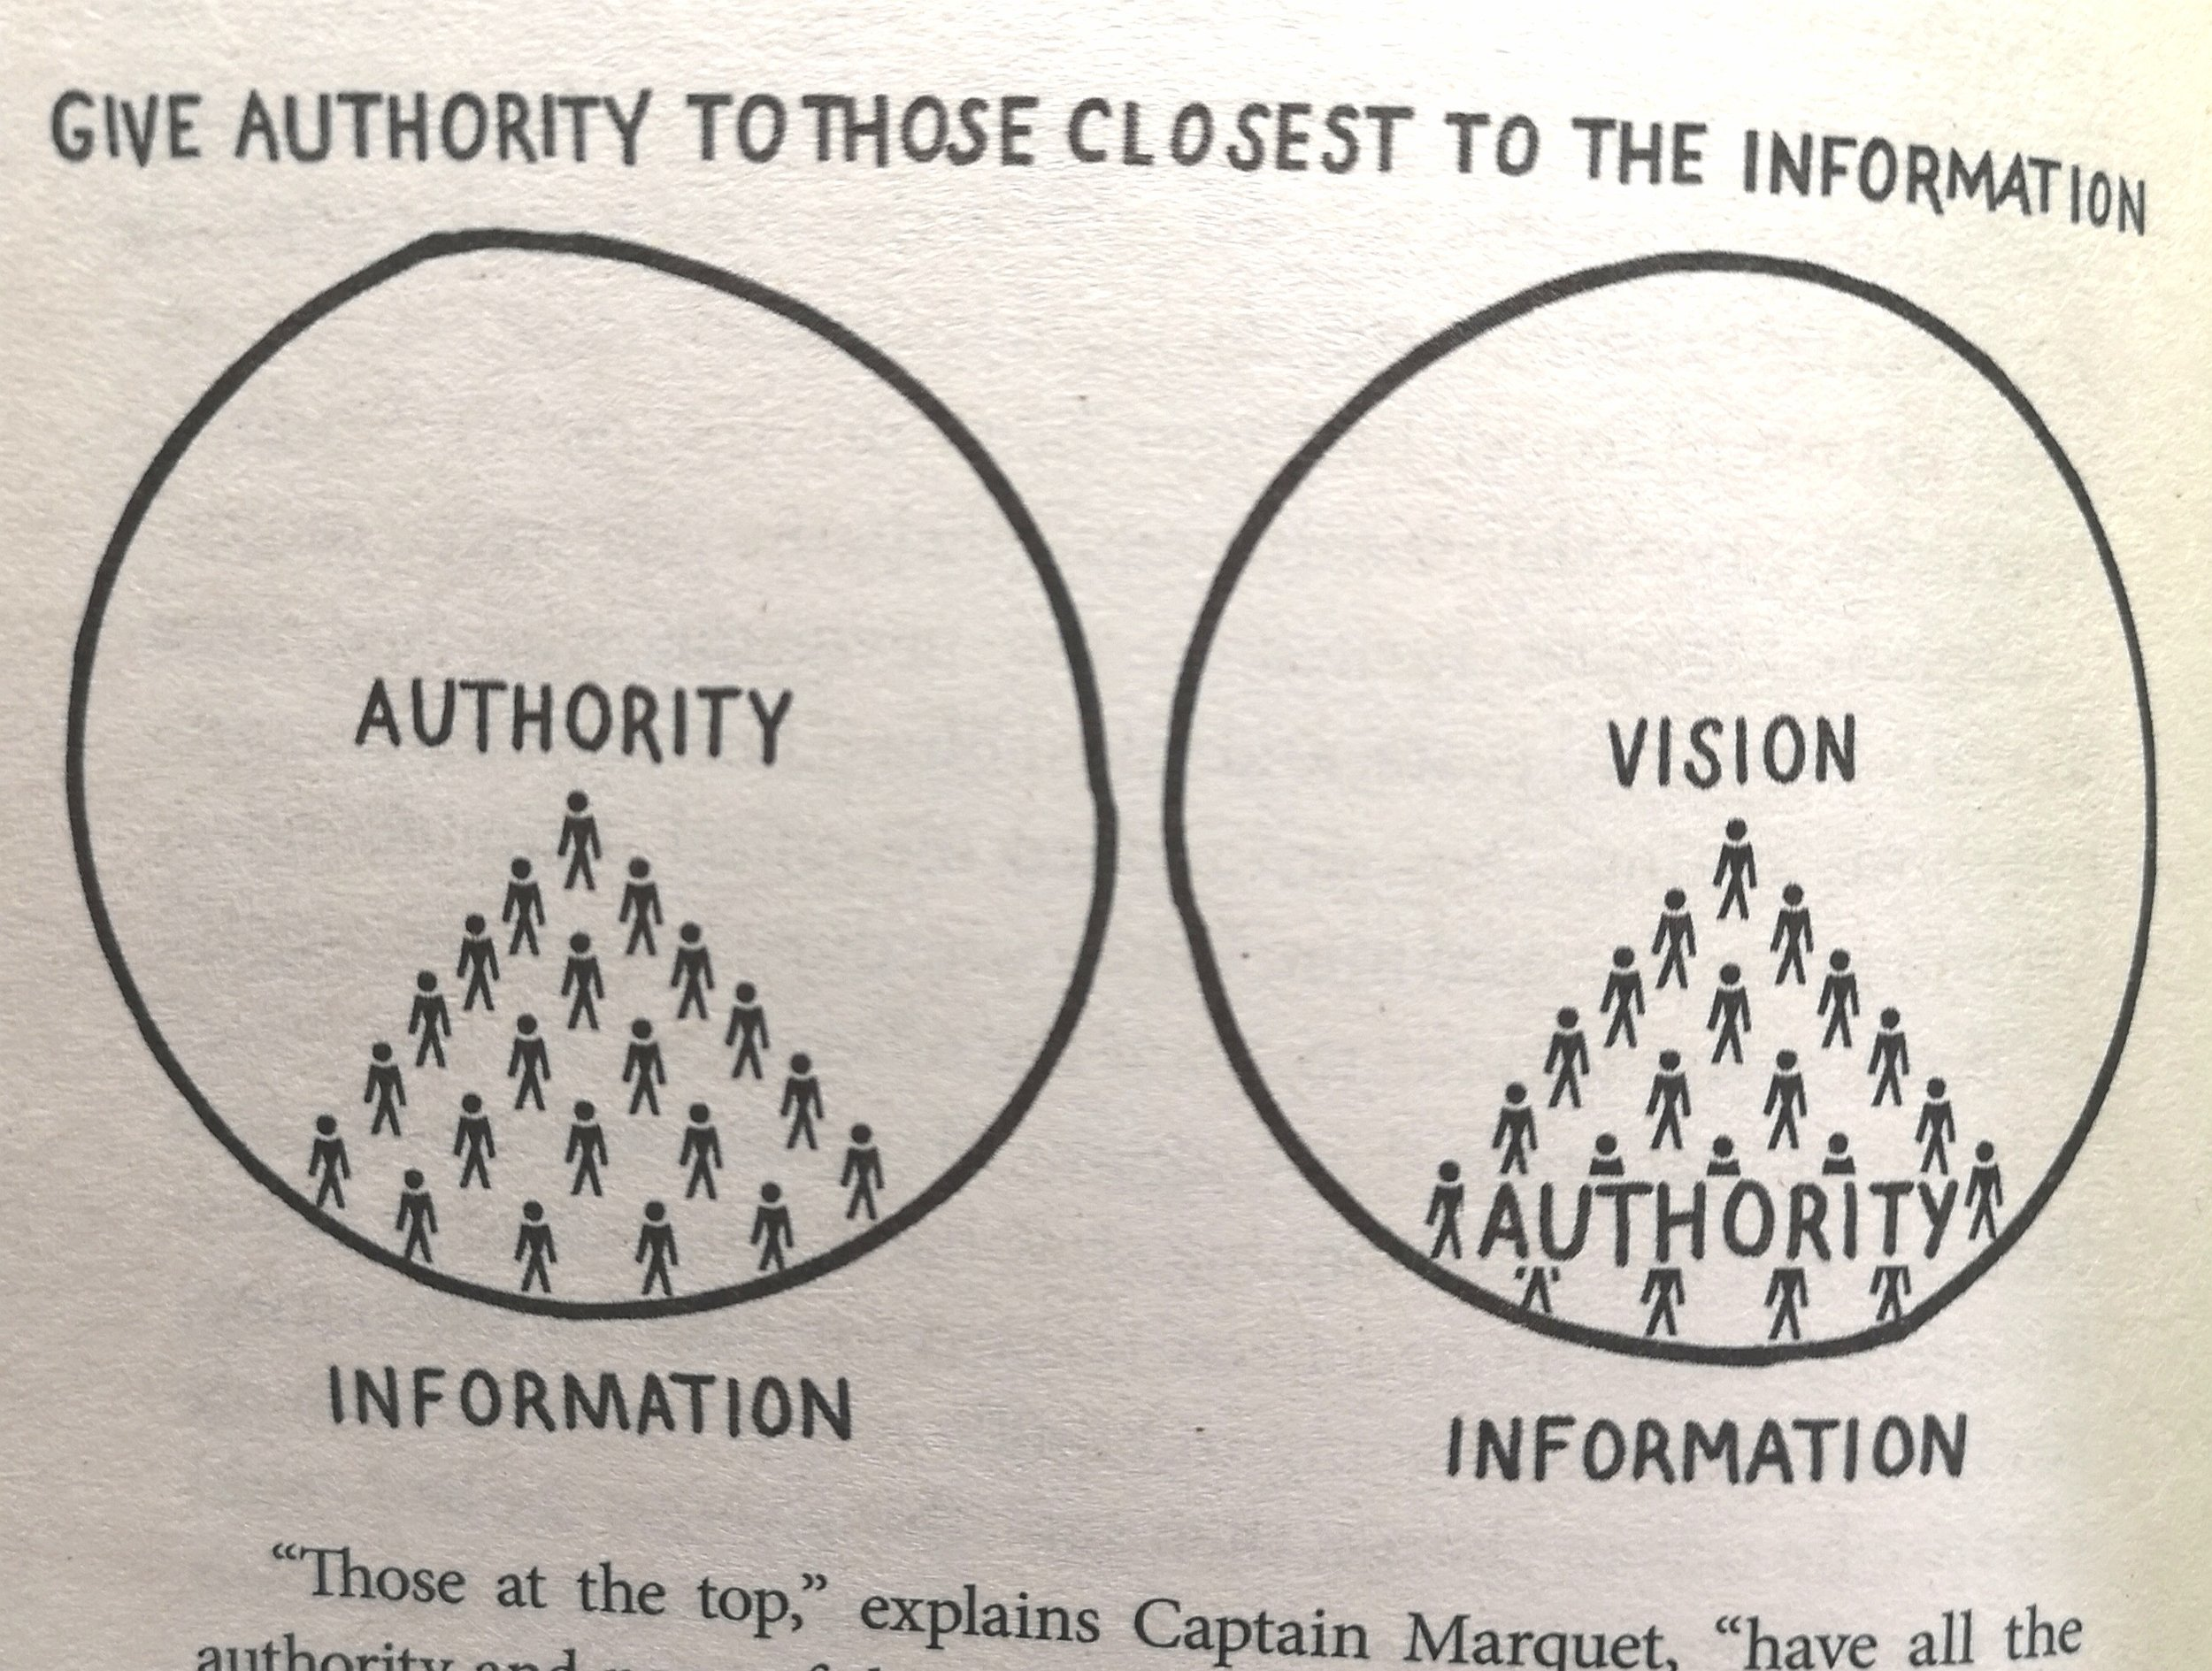 Vision authority simon sinek.jpg